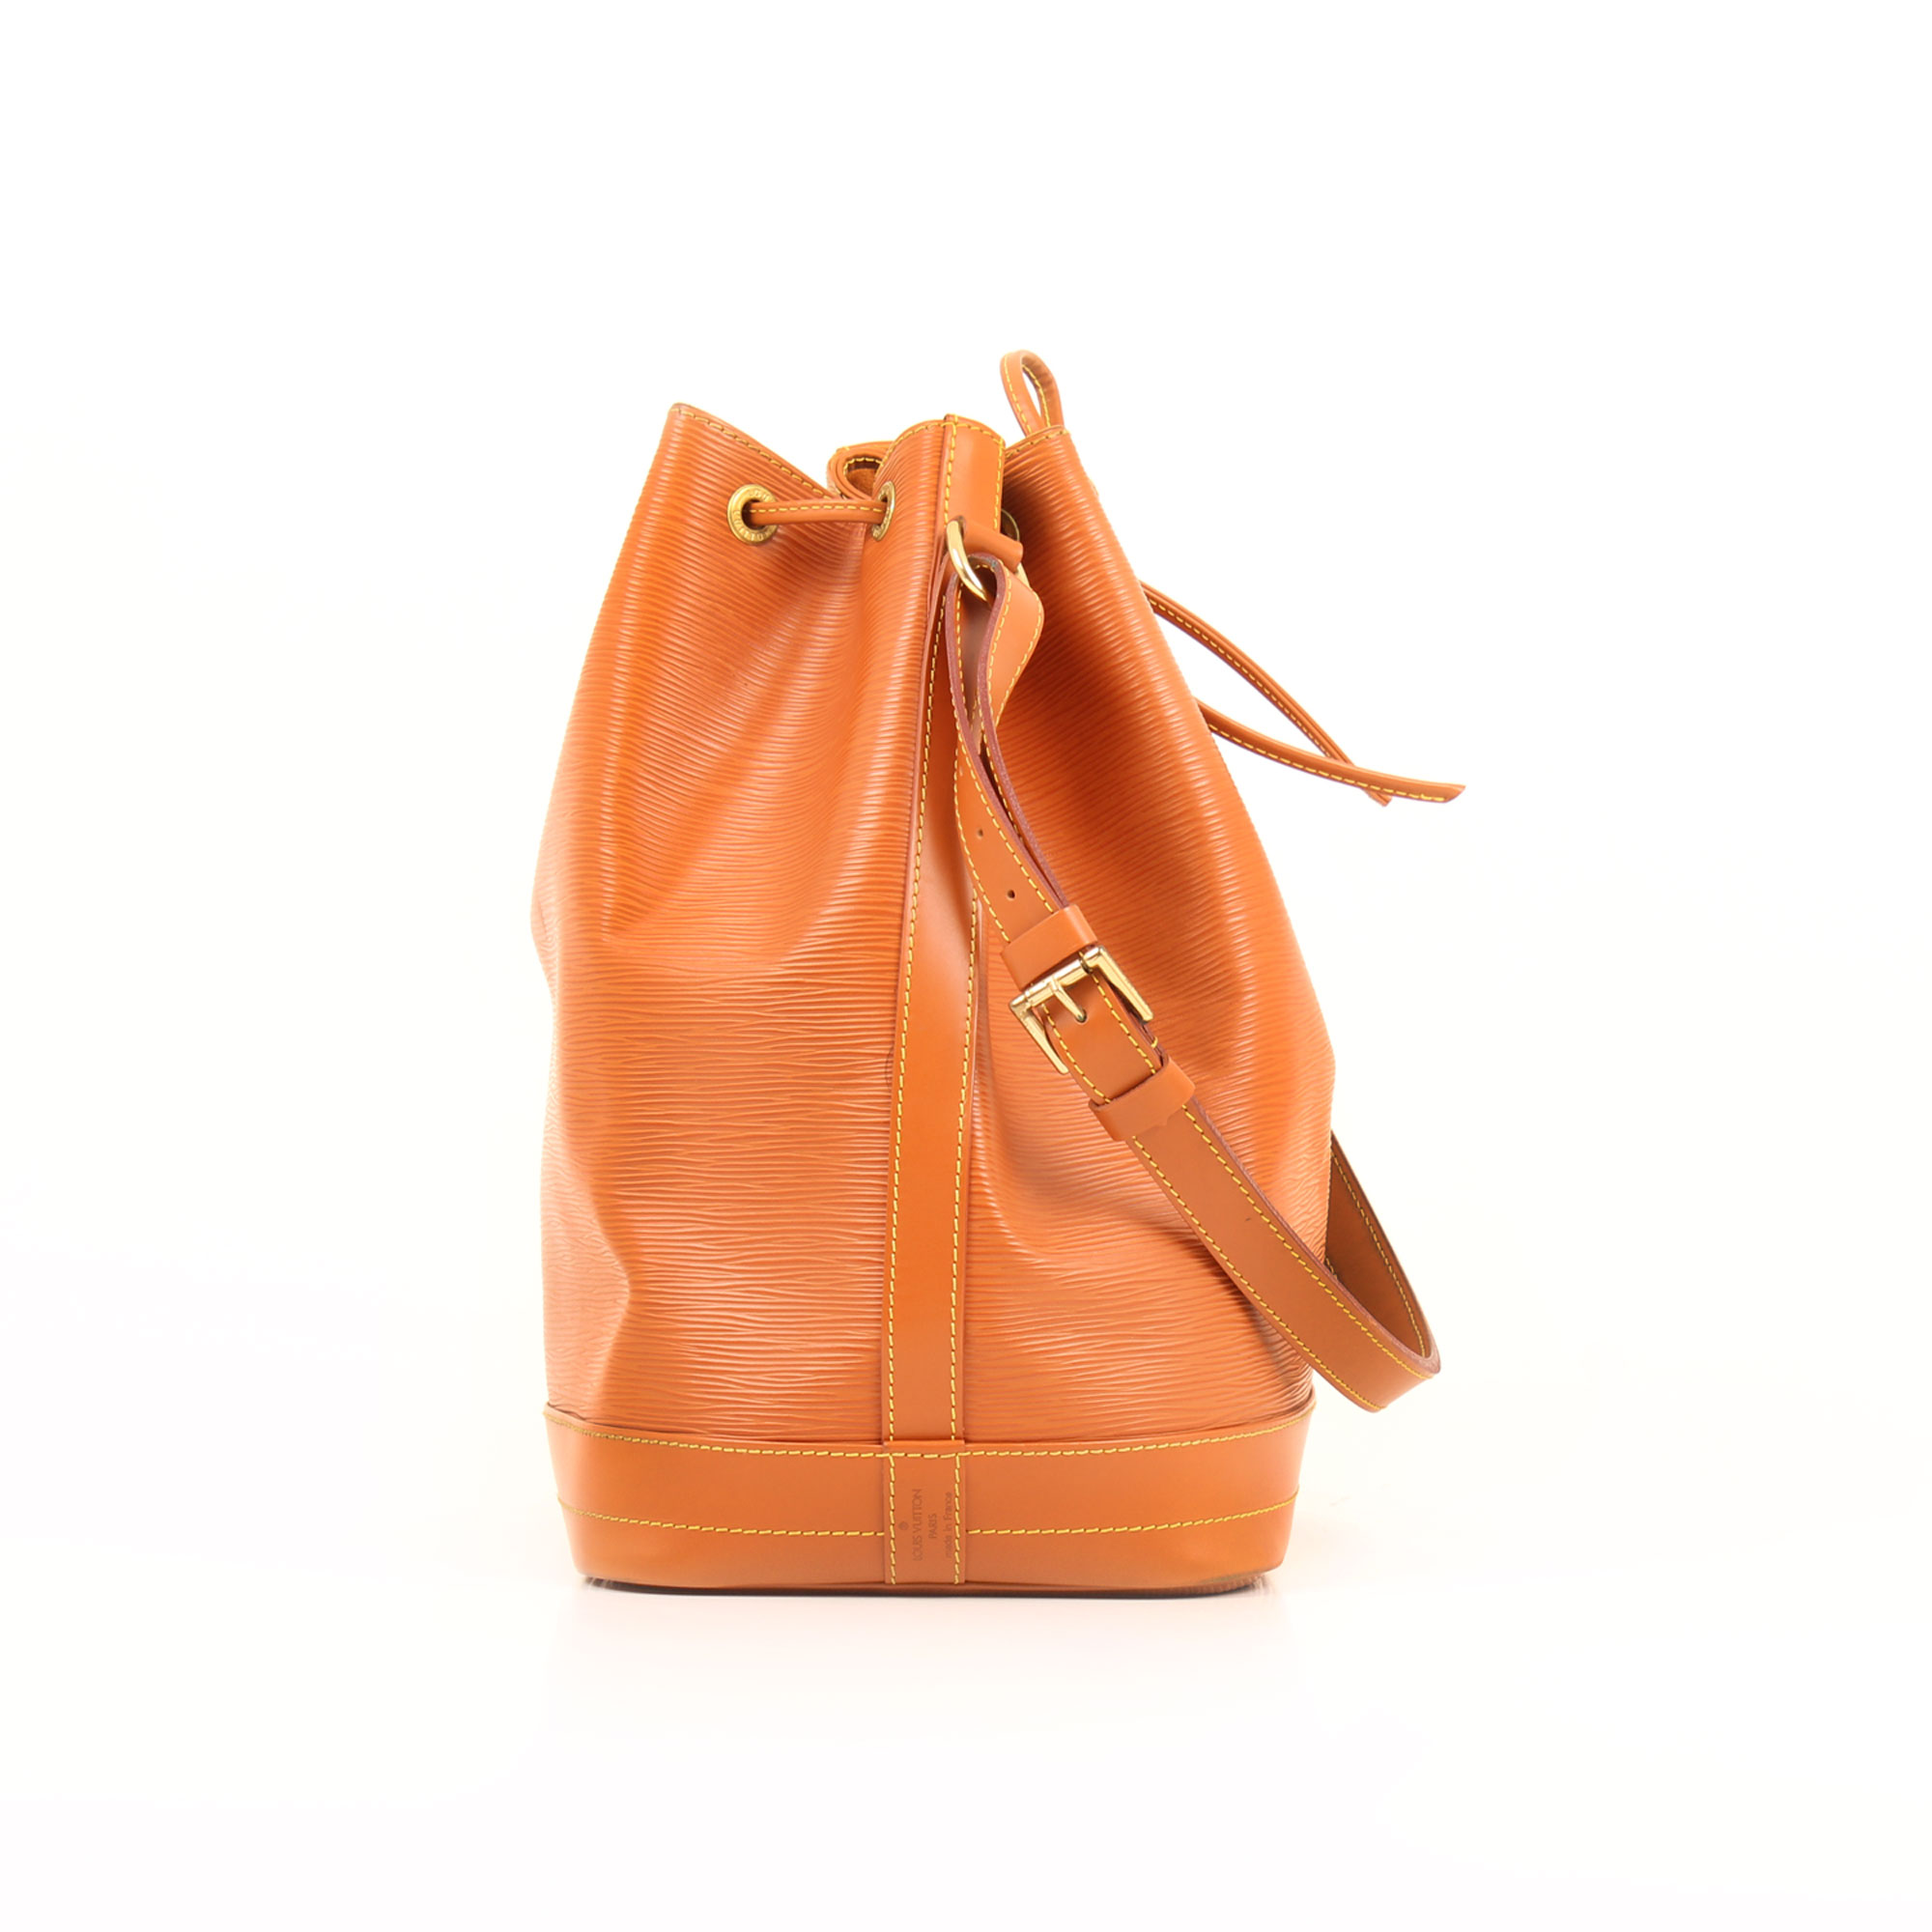 Side image of louis vuitton noe camel epi leather